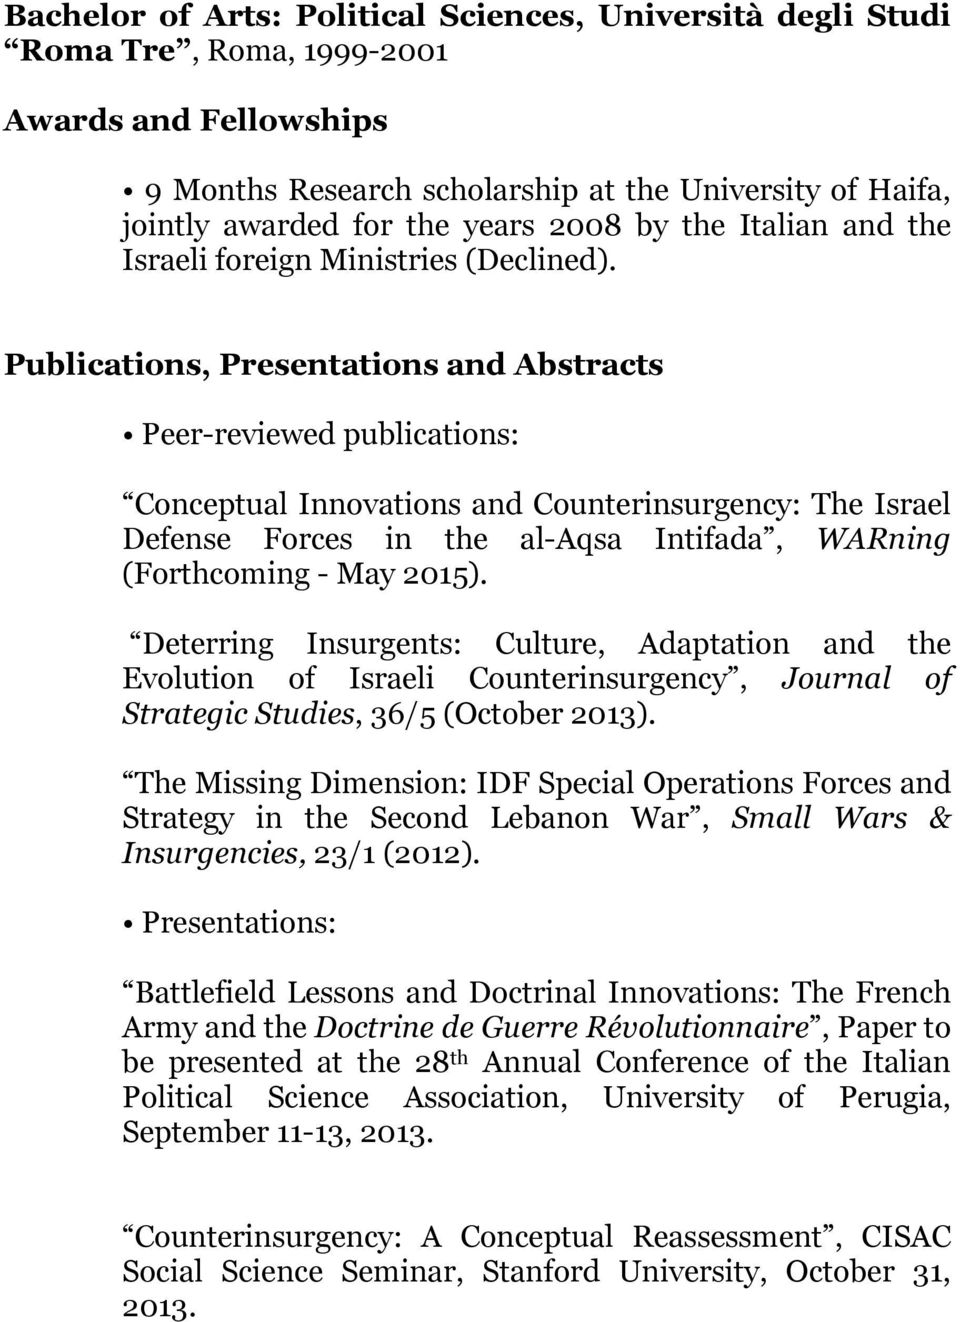 Publications, Presentations and Abstracts Peer-reviewed publications: Conceptual Innovations and Counterinsurgency: The Israel Defense Forces in the al-aqsa Intifada, WARning (Forthcoming - May 2015).